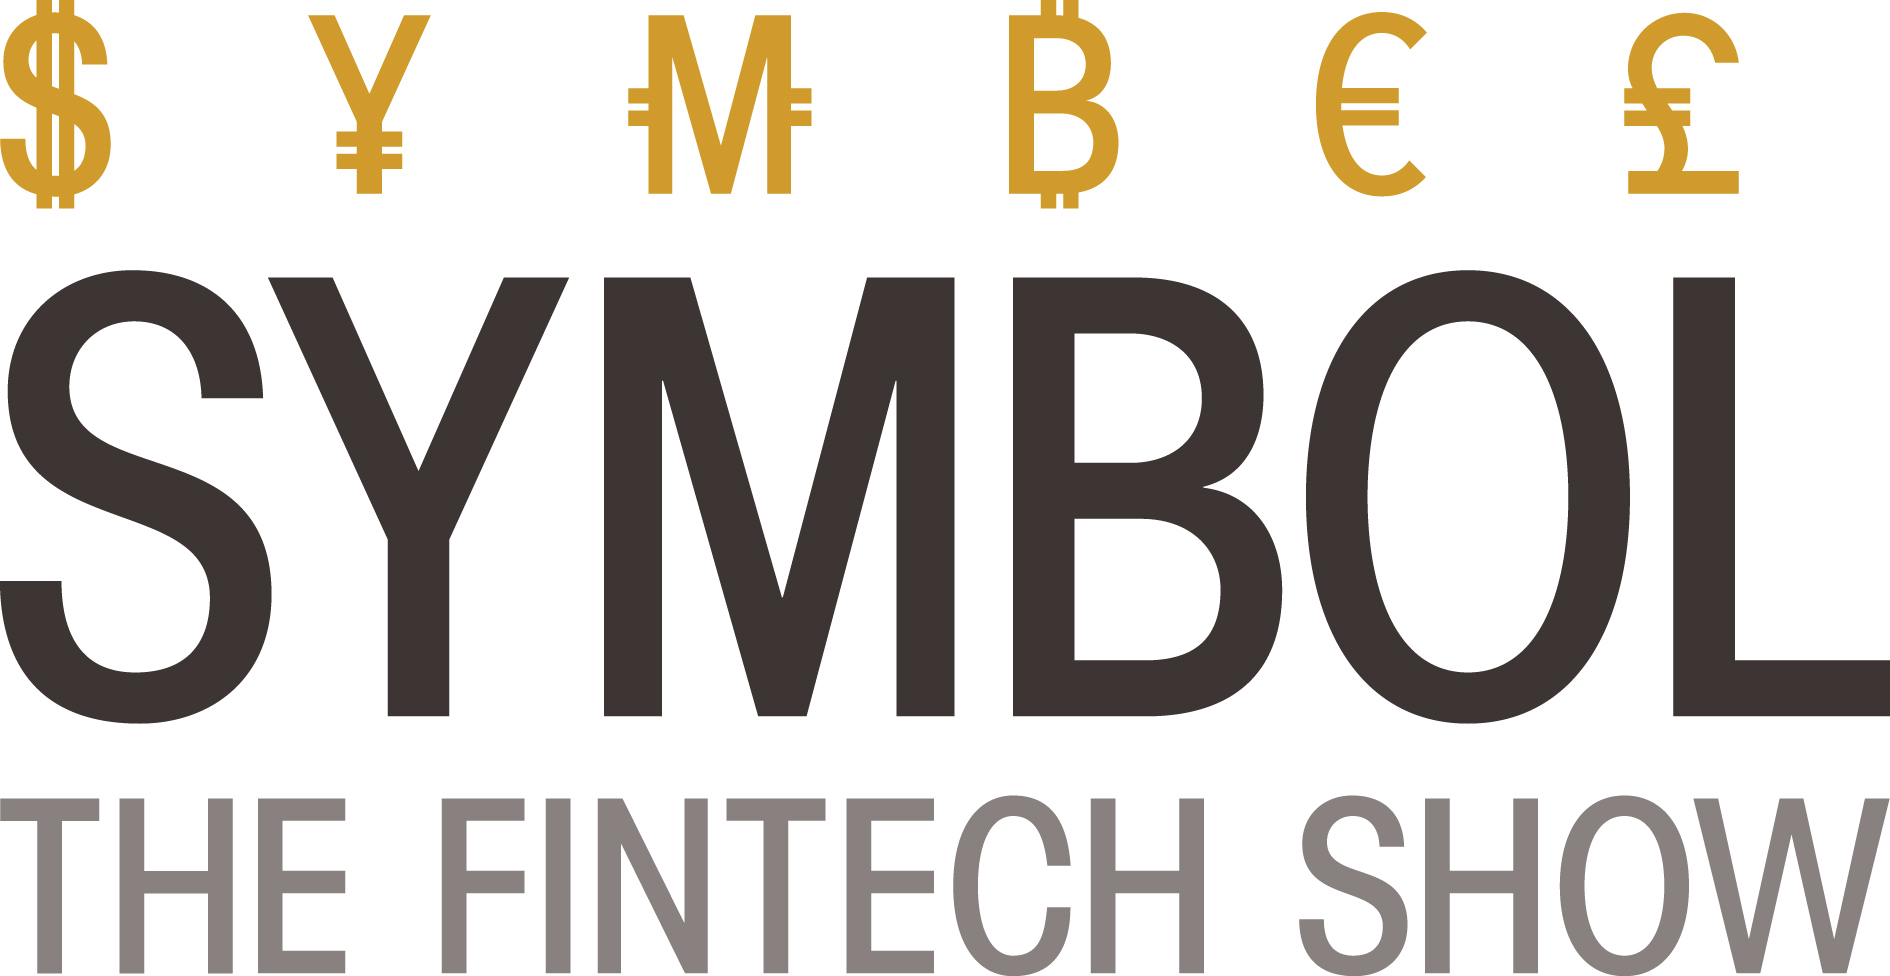 Cards & Payments Africa - Featuring Symbol the Fintech Show